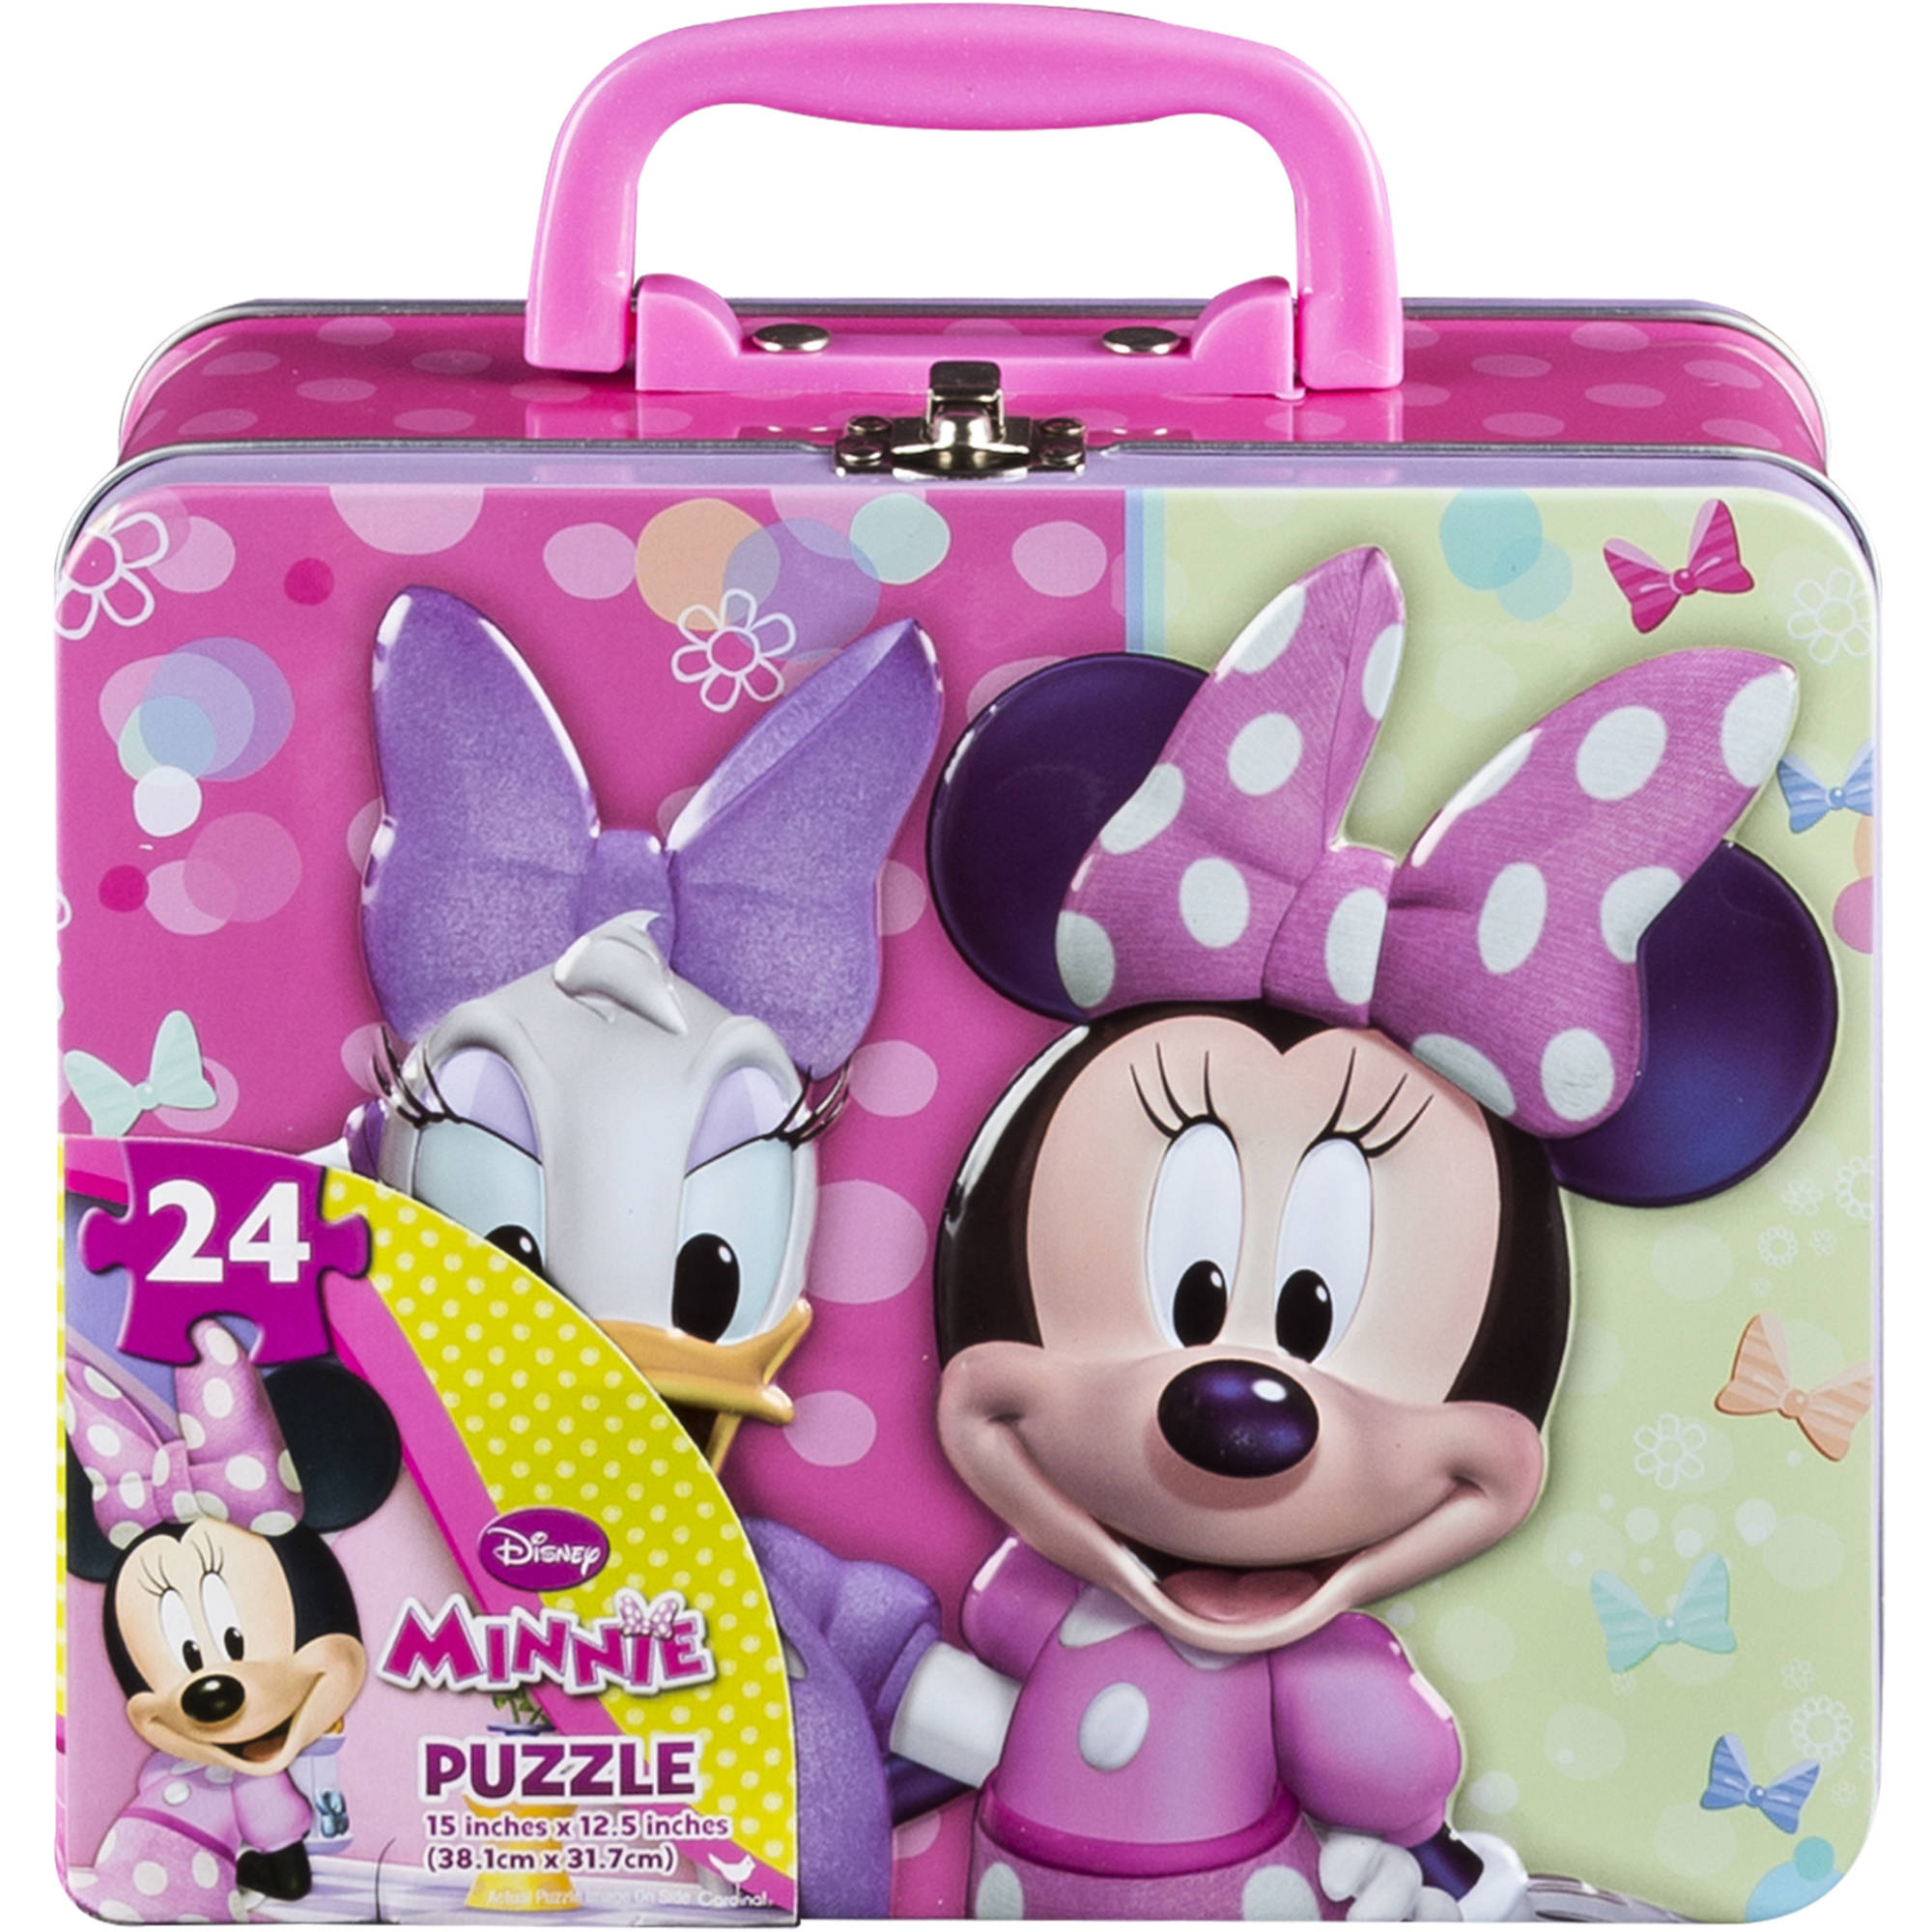 Disney Junior Minnie Mouse 24-Piece Puzzle in Tin Box with Handle